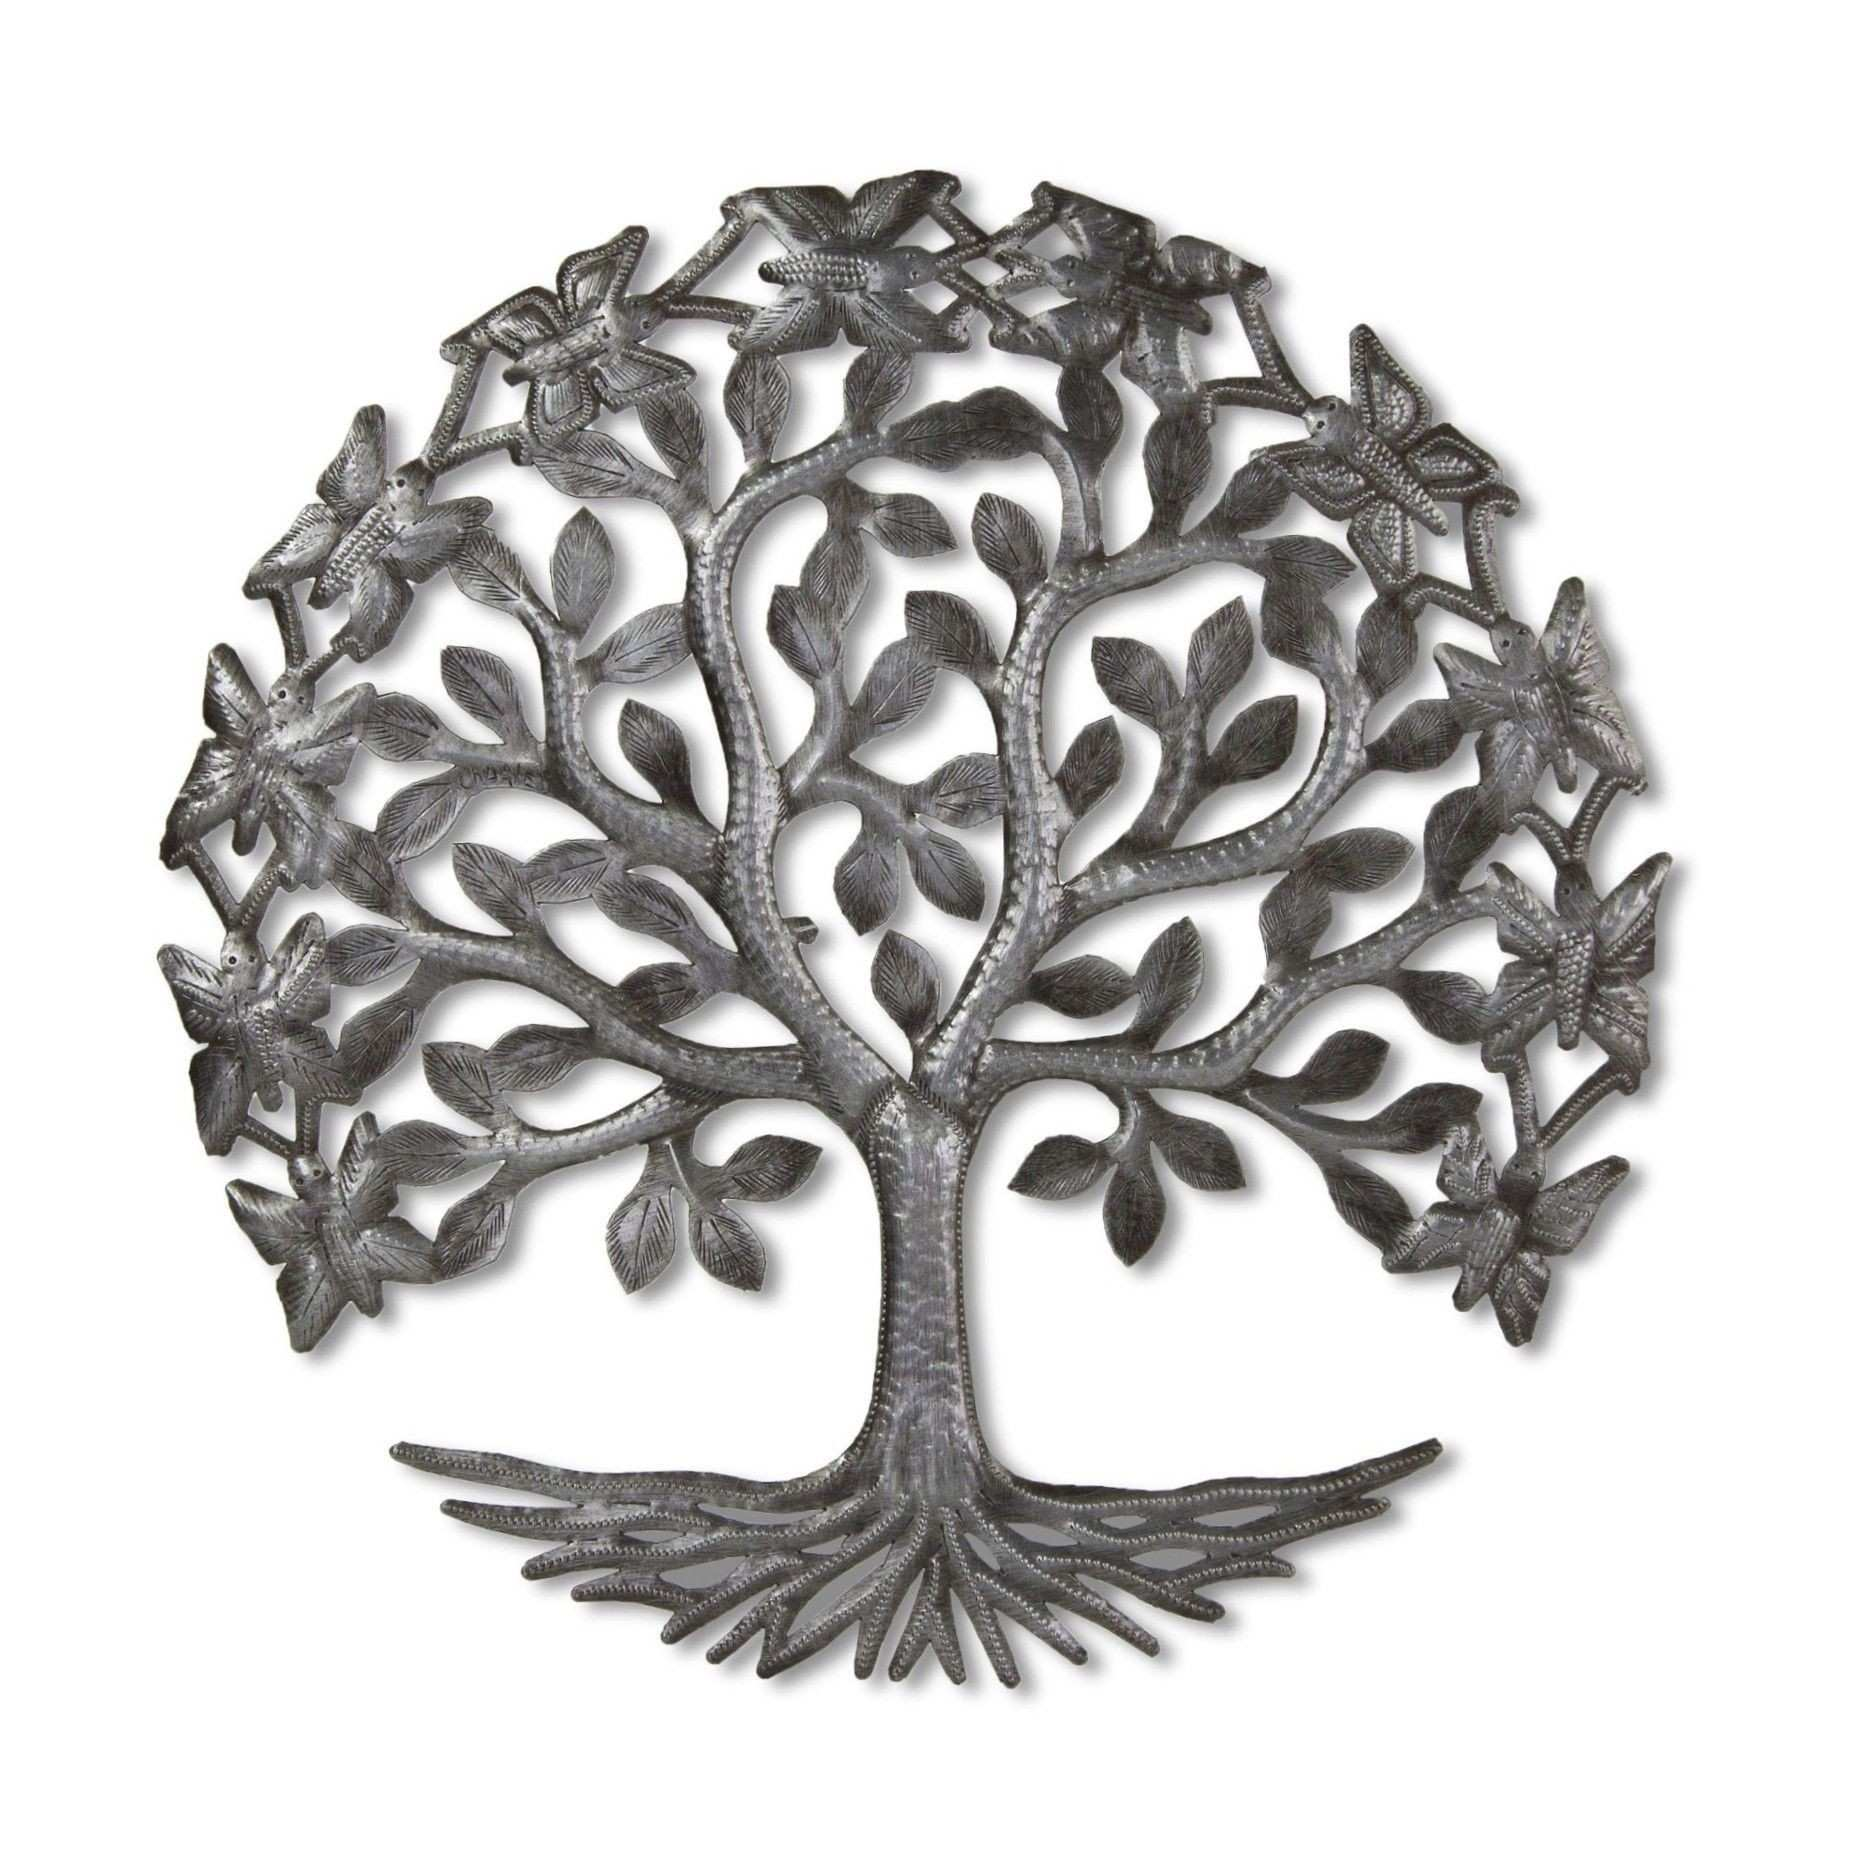 15 inch Tree of LIfe with Butterflies Recycled Metal Wall Art